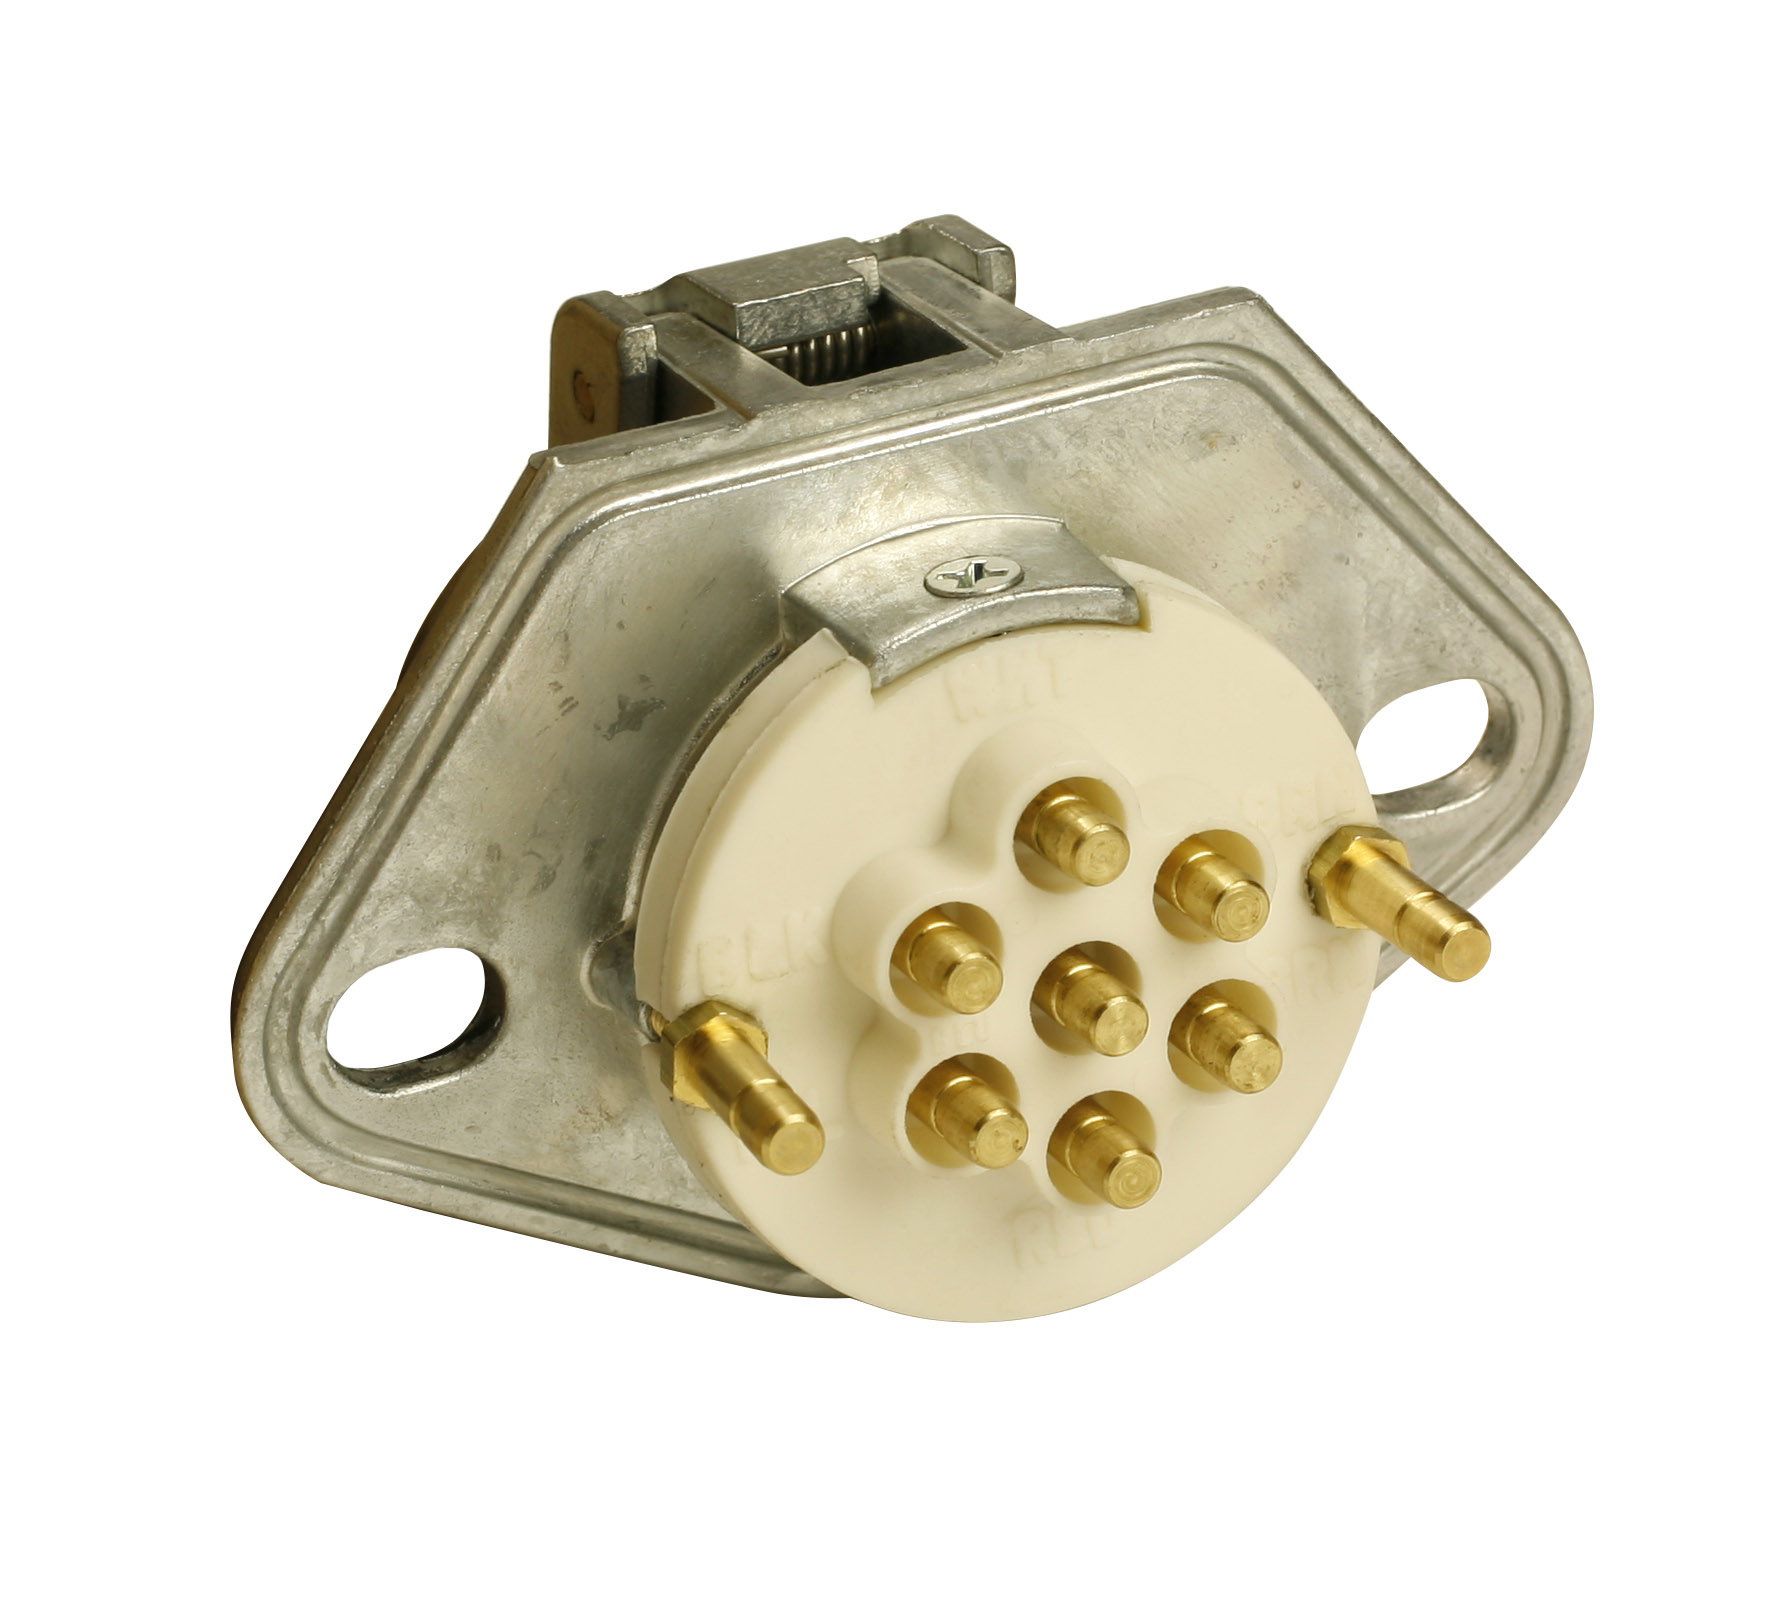 Grote Industries - 87250 – Ultra-Pin Receptacle Two-Hole Mount, Receptacle Only, Split Pin